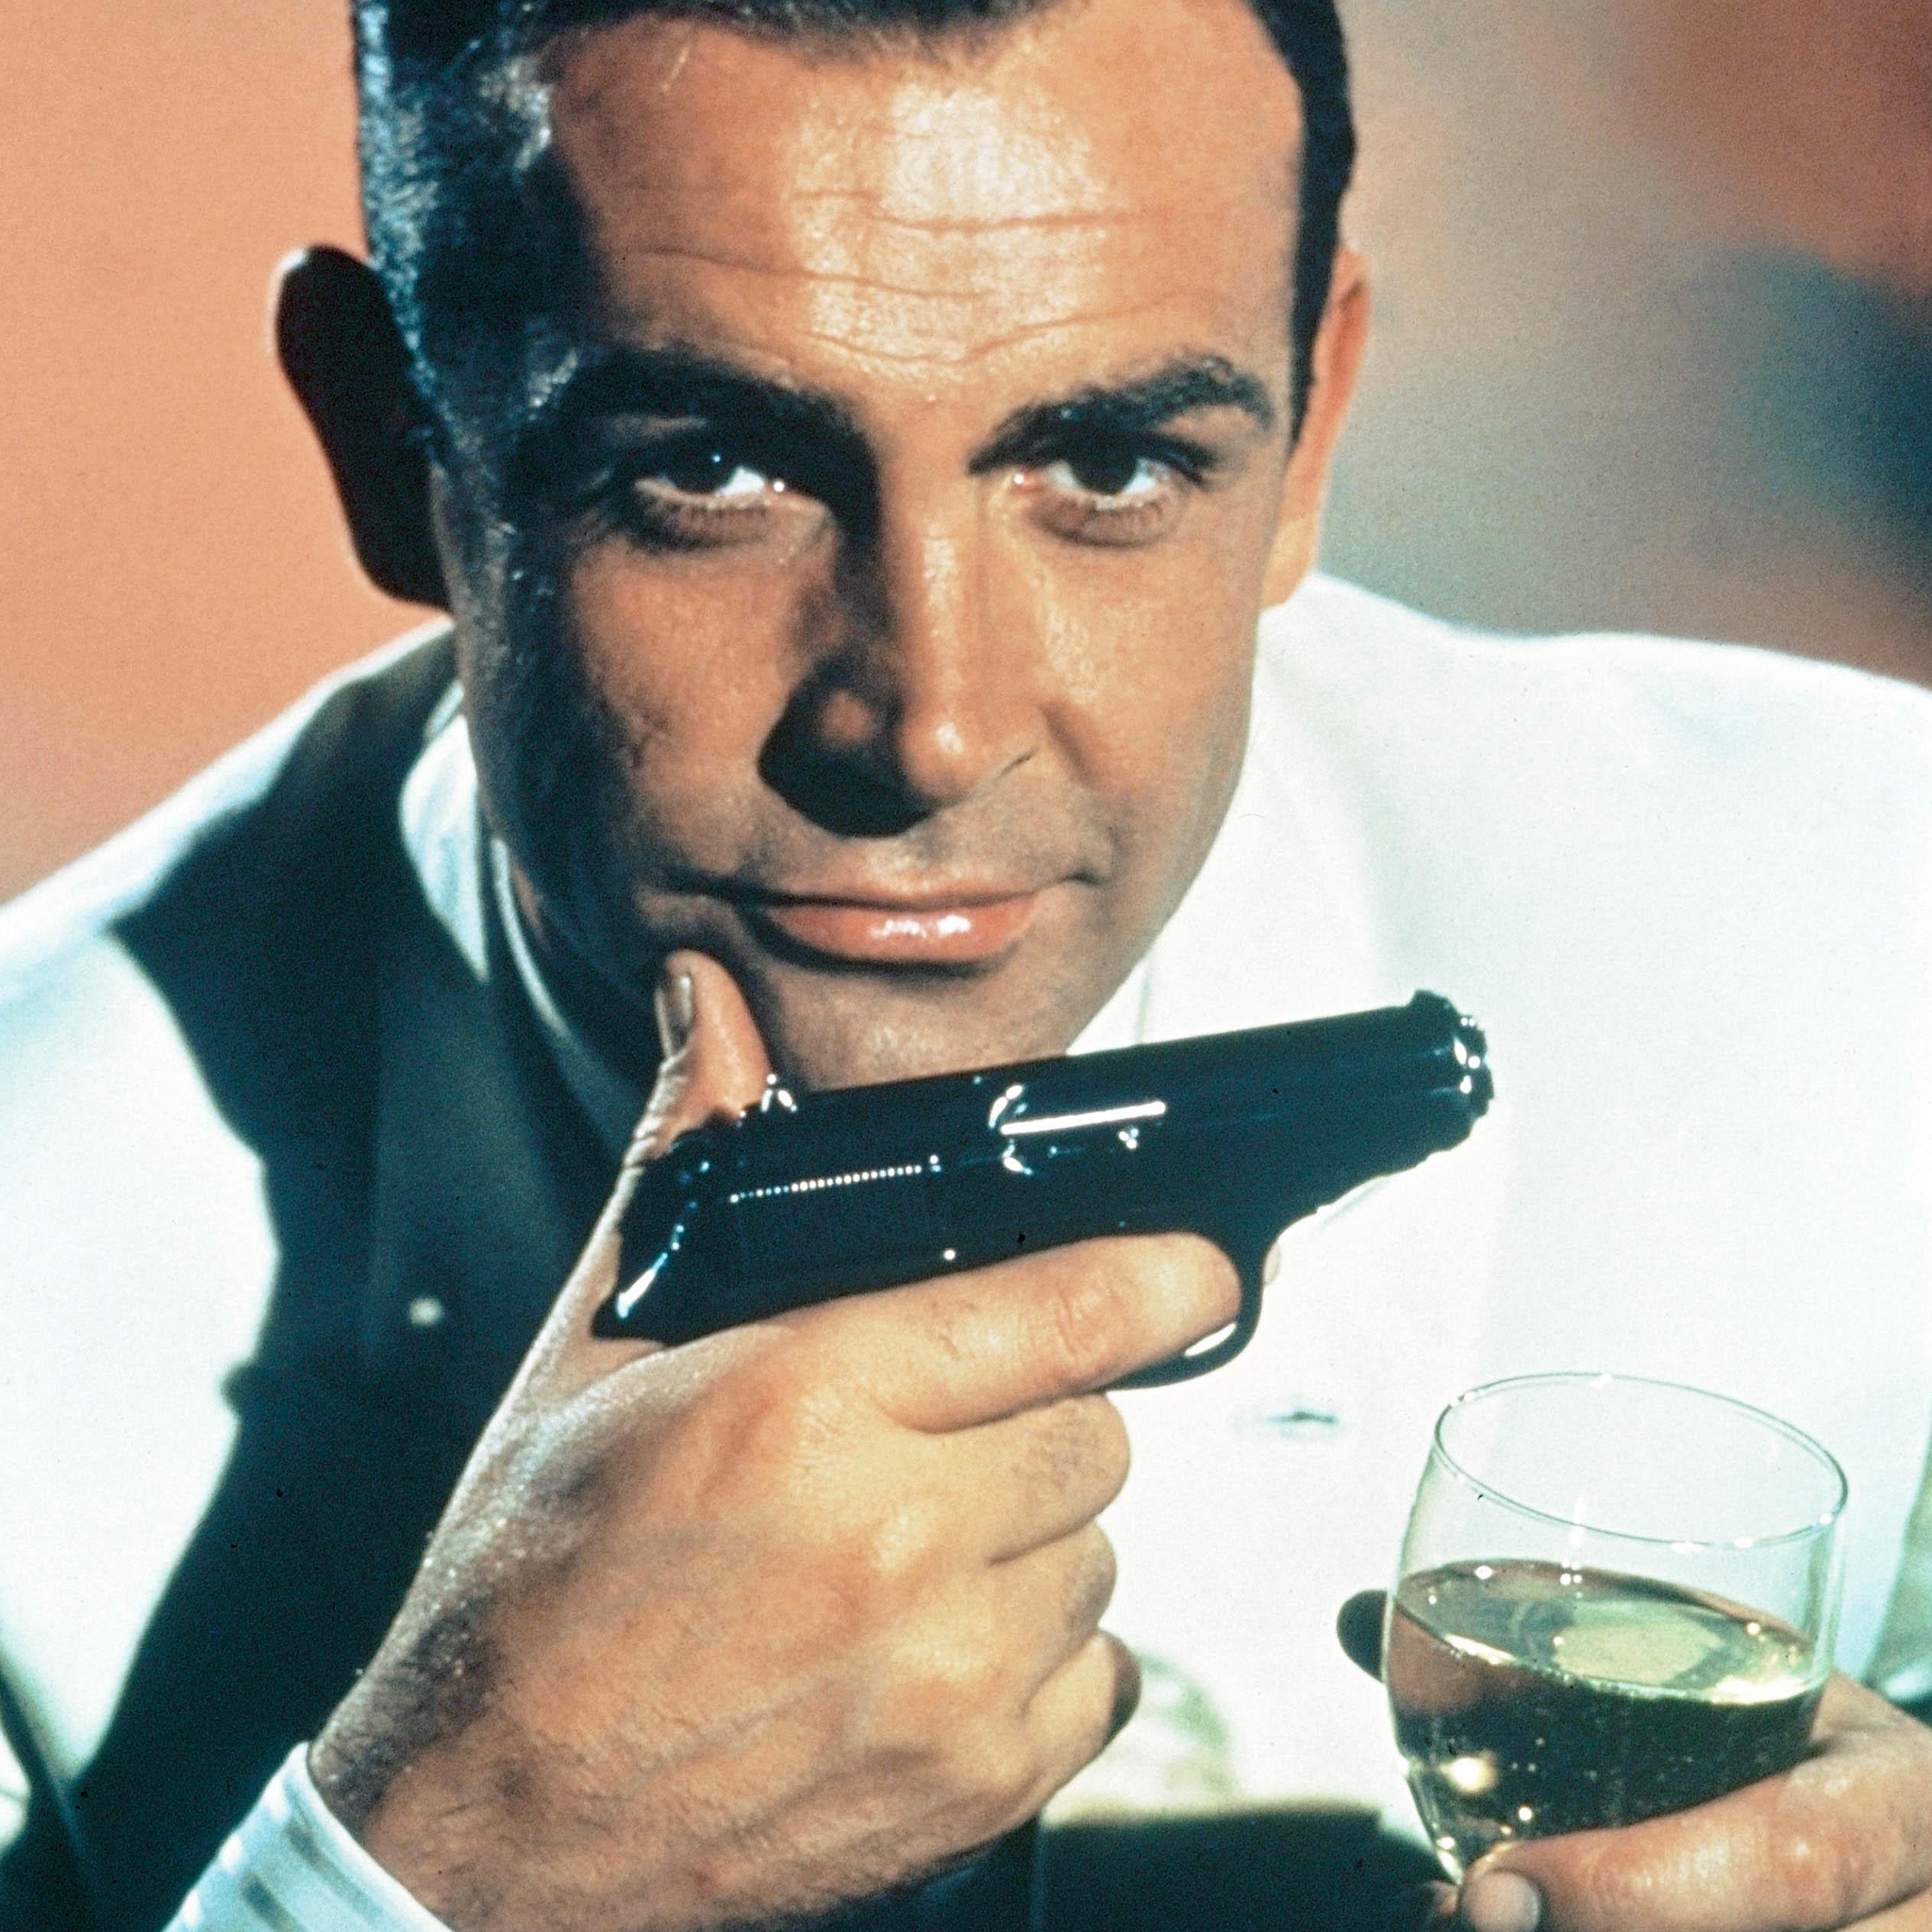 Sean-Connery-3Wallpapers-iPad-Retina